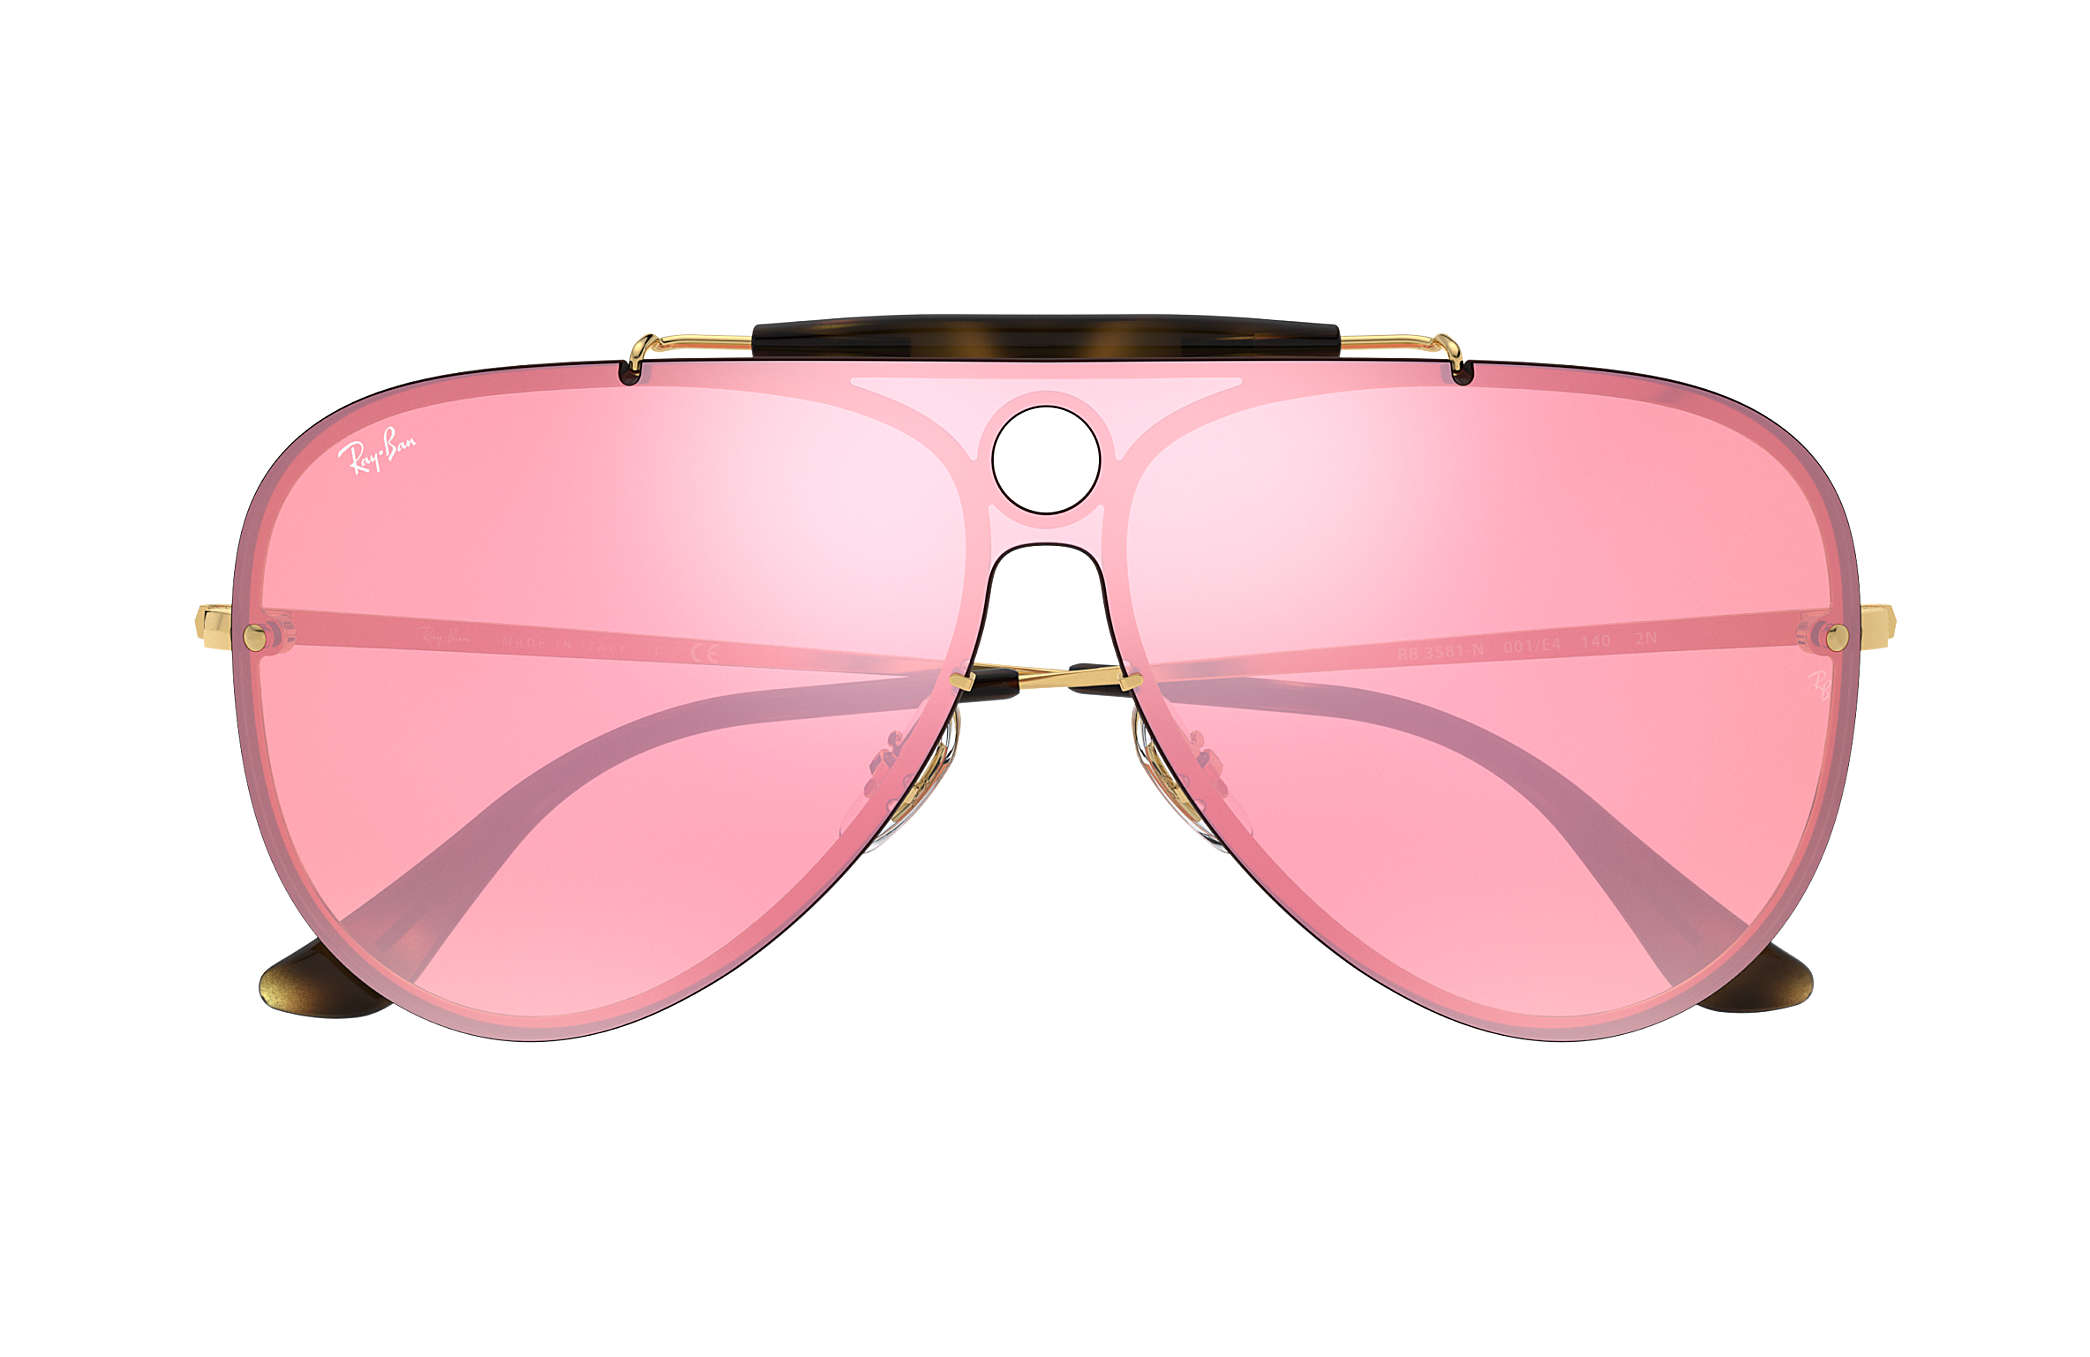 34ddc68aac2 Ray-Ban Blaze Shooter RB3581N Gold - Metal - Pink Lenses ...